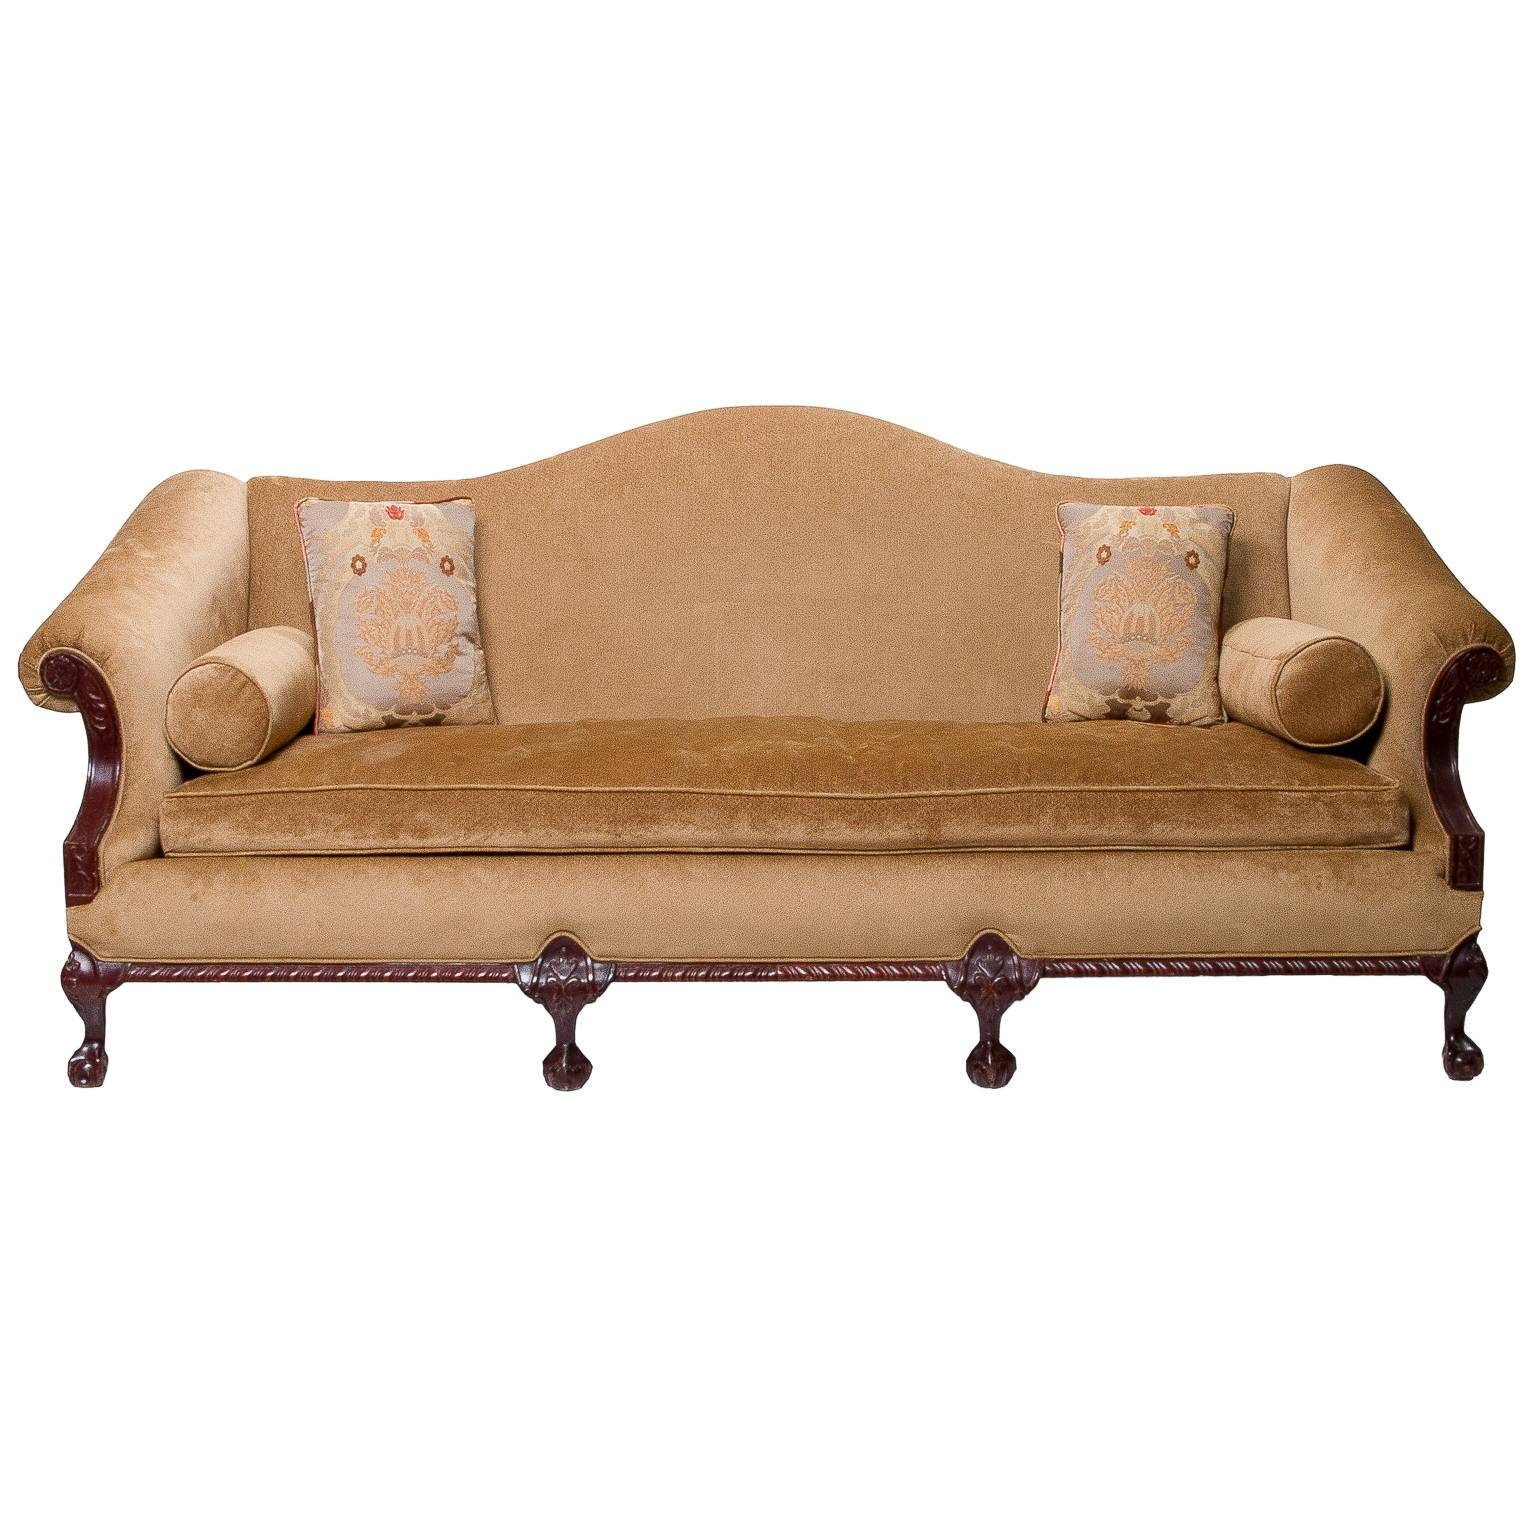 A Vintage Chippendale Camel Back Sofa » Northgate Gallery Antiques pertaining to Chippendale Camelback Sofas (Image 3 of 15)